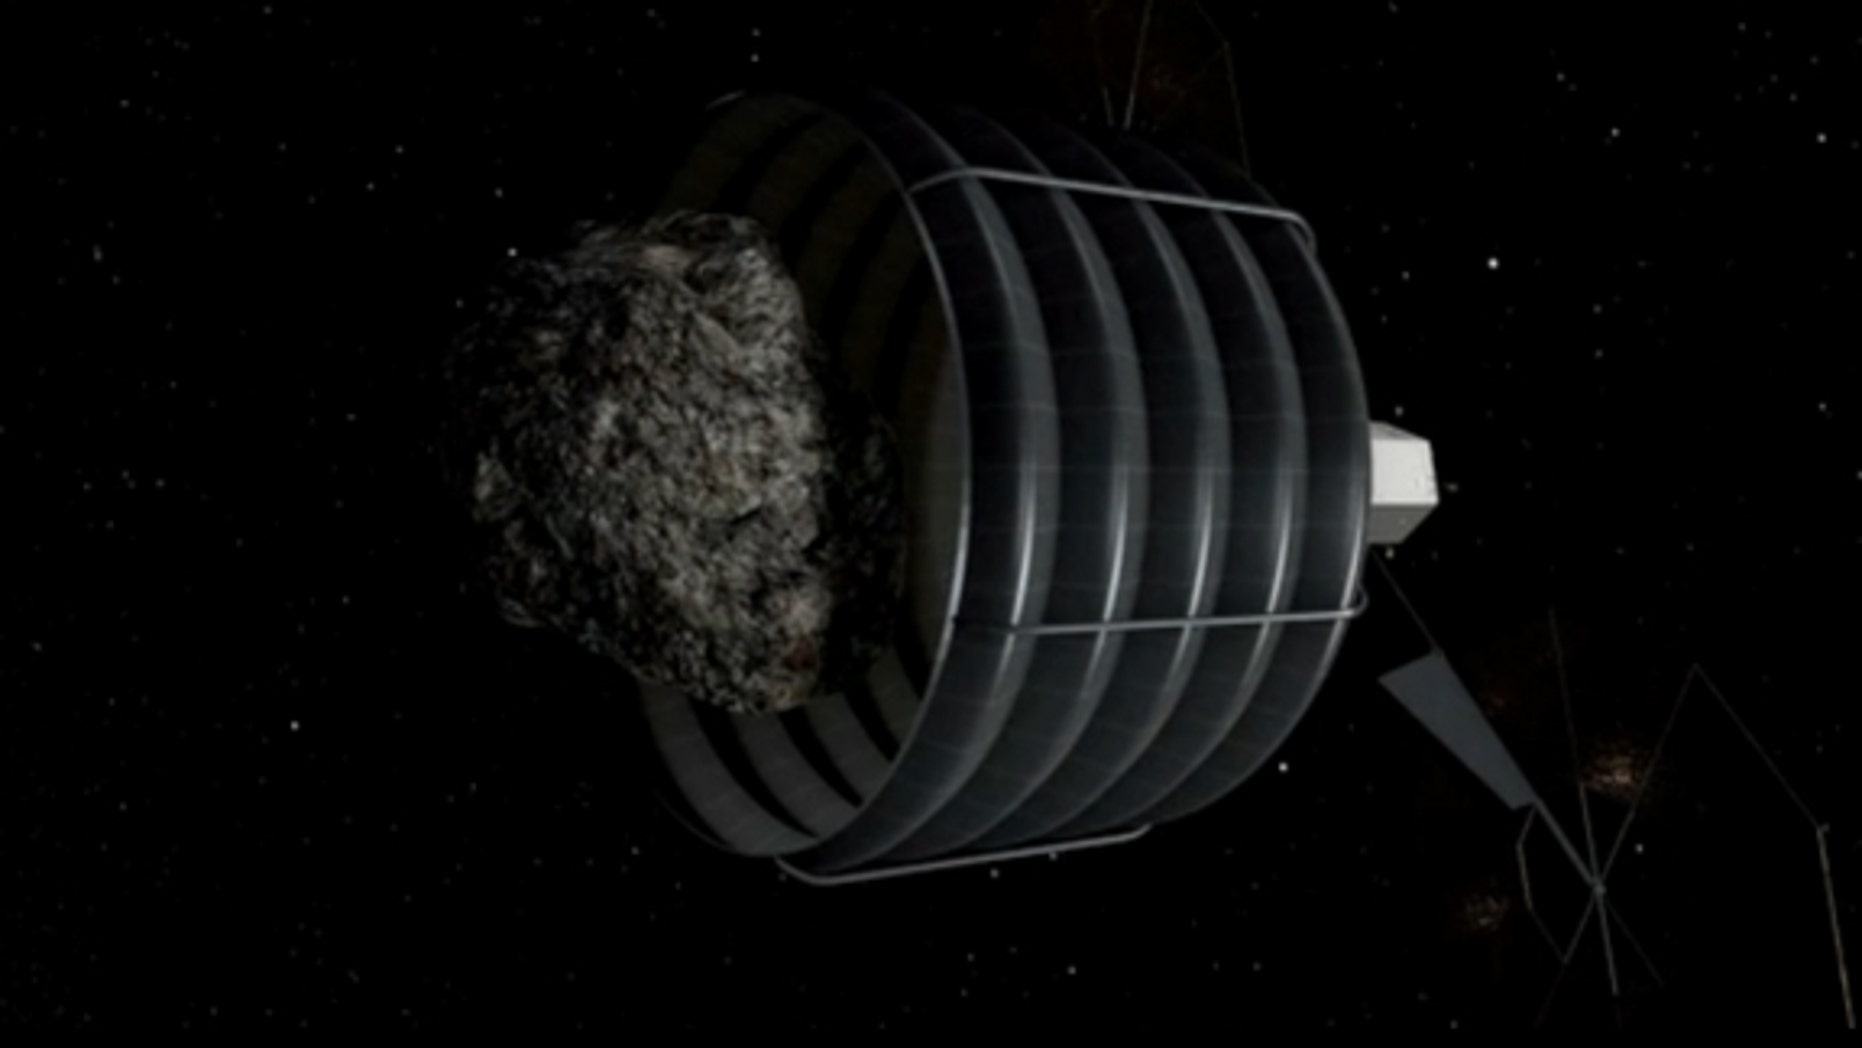 In this still from a NASA video, a robotic spacecraft's capture bag swallows an asteroid in order to return it to Earth.